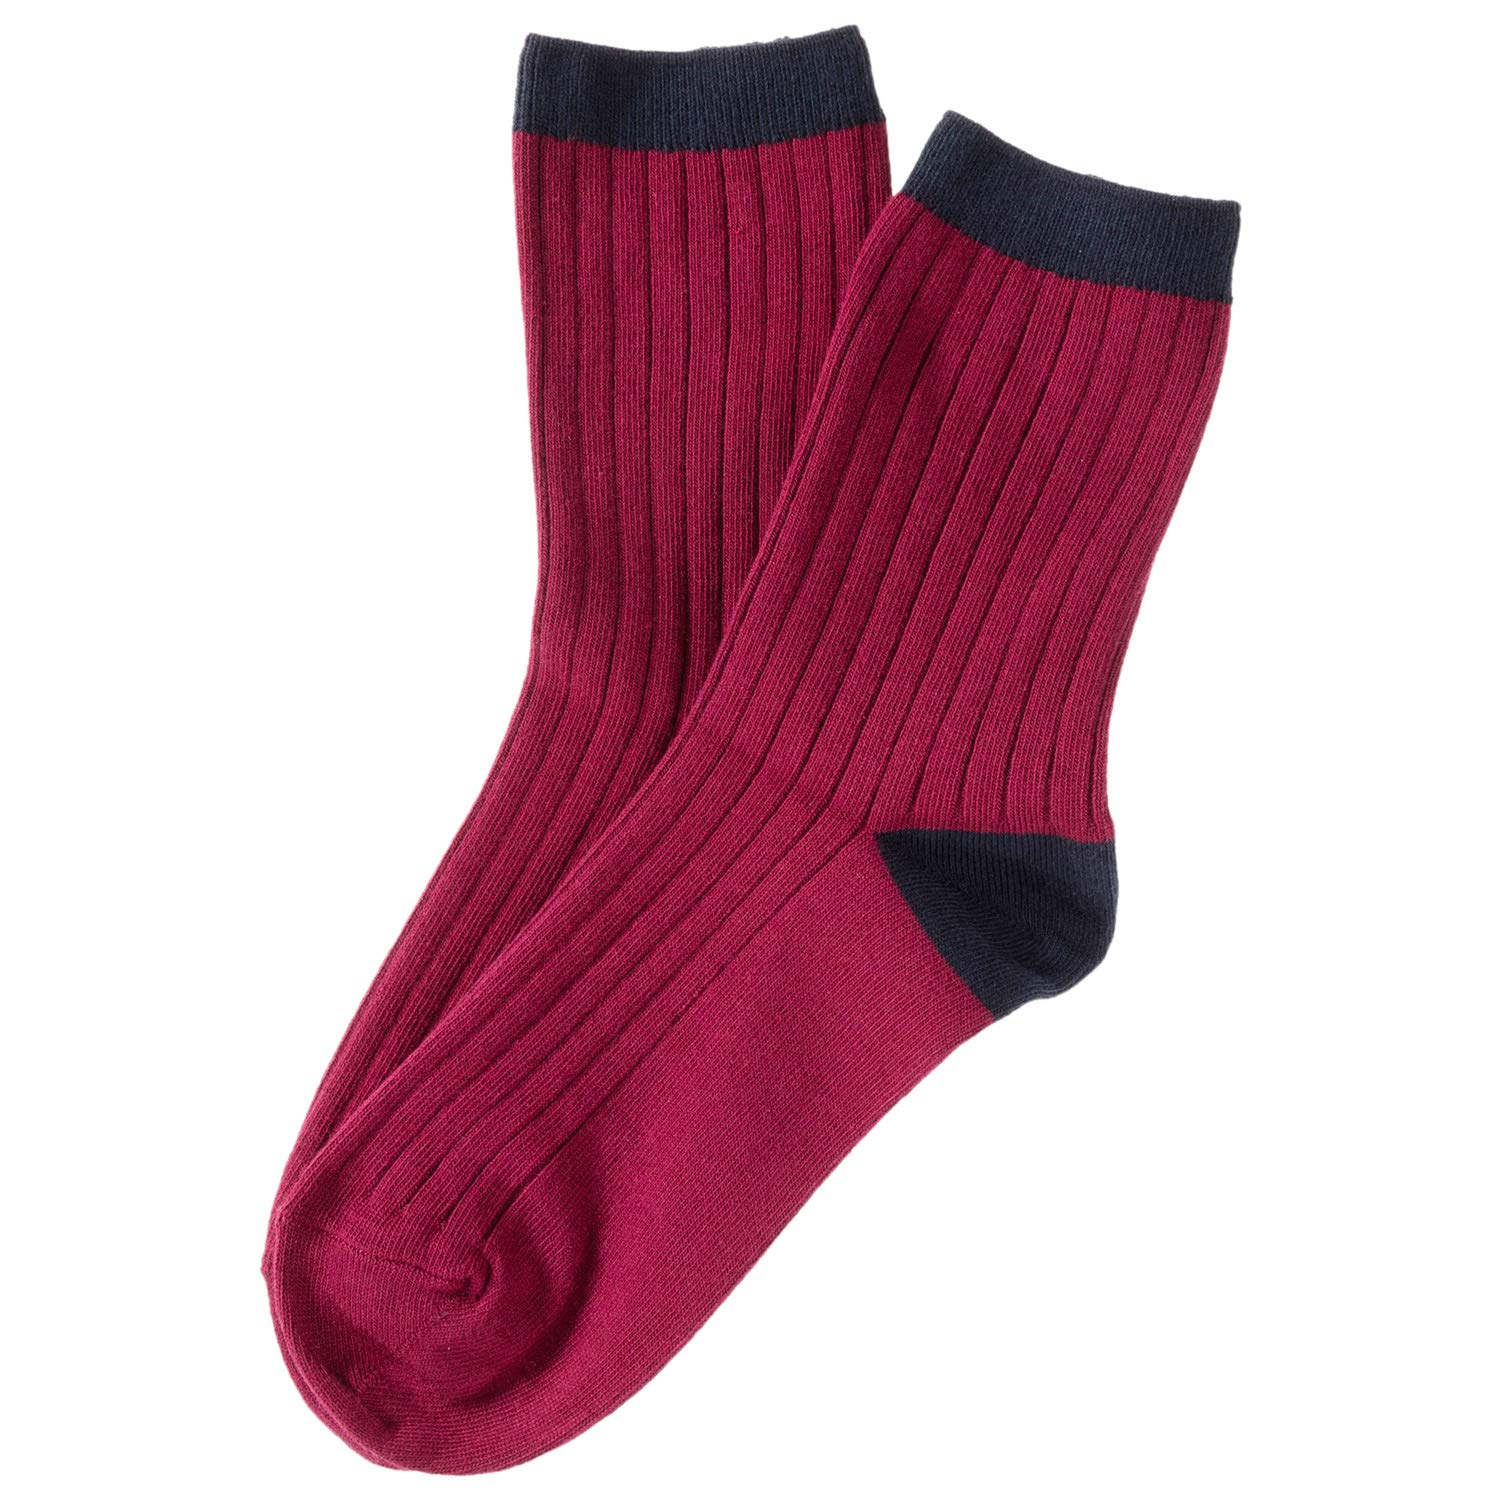 (Wine) Lian LifeStyle Women's 4 Pairs Combed Cotton Socks HR1751 Casual Size 69